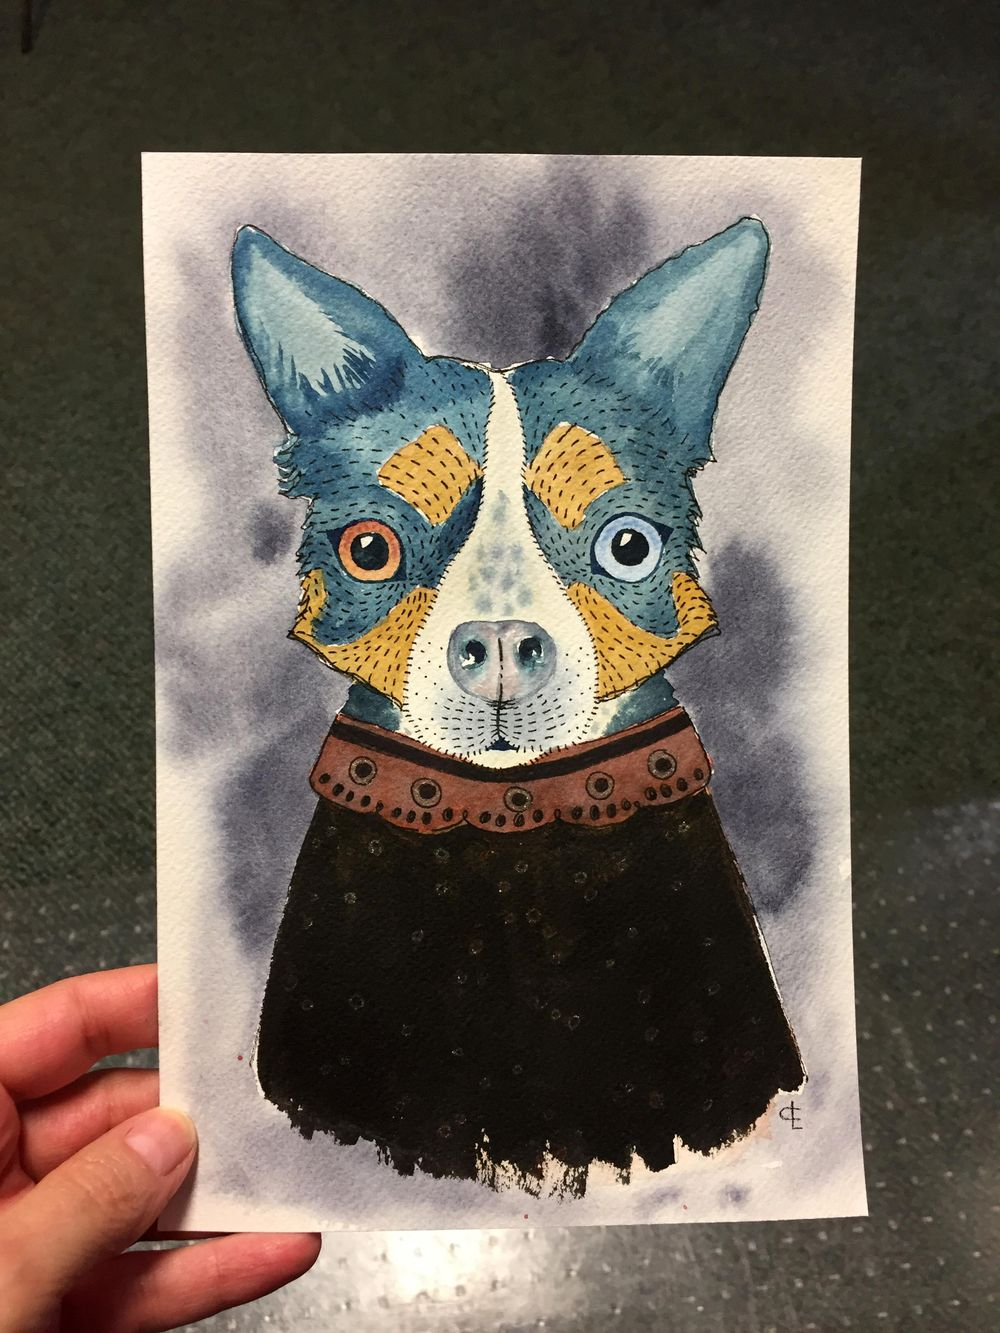 My Dog: Boo - image 1 - student project